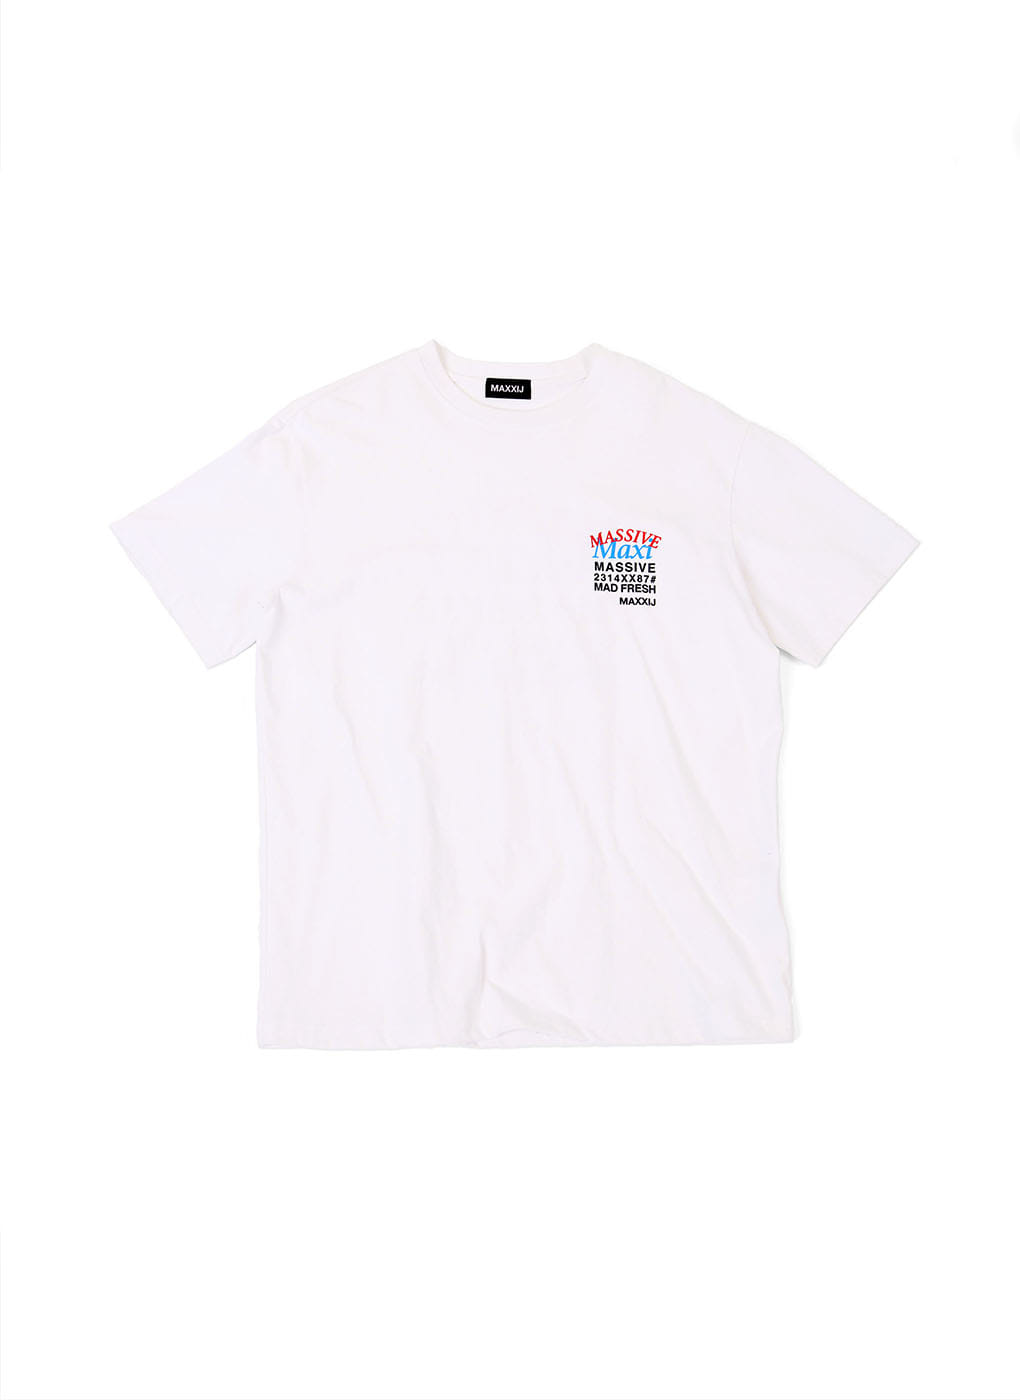 White 'MAXI' Printed T-shirt